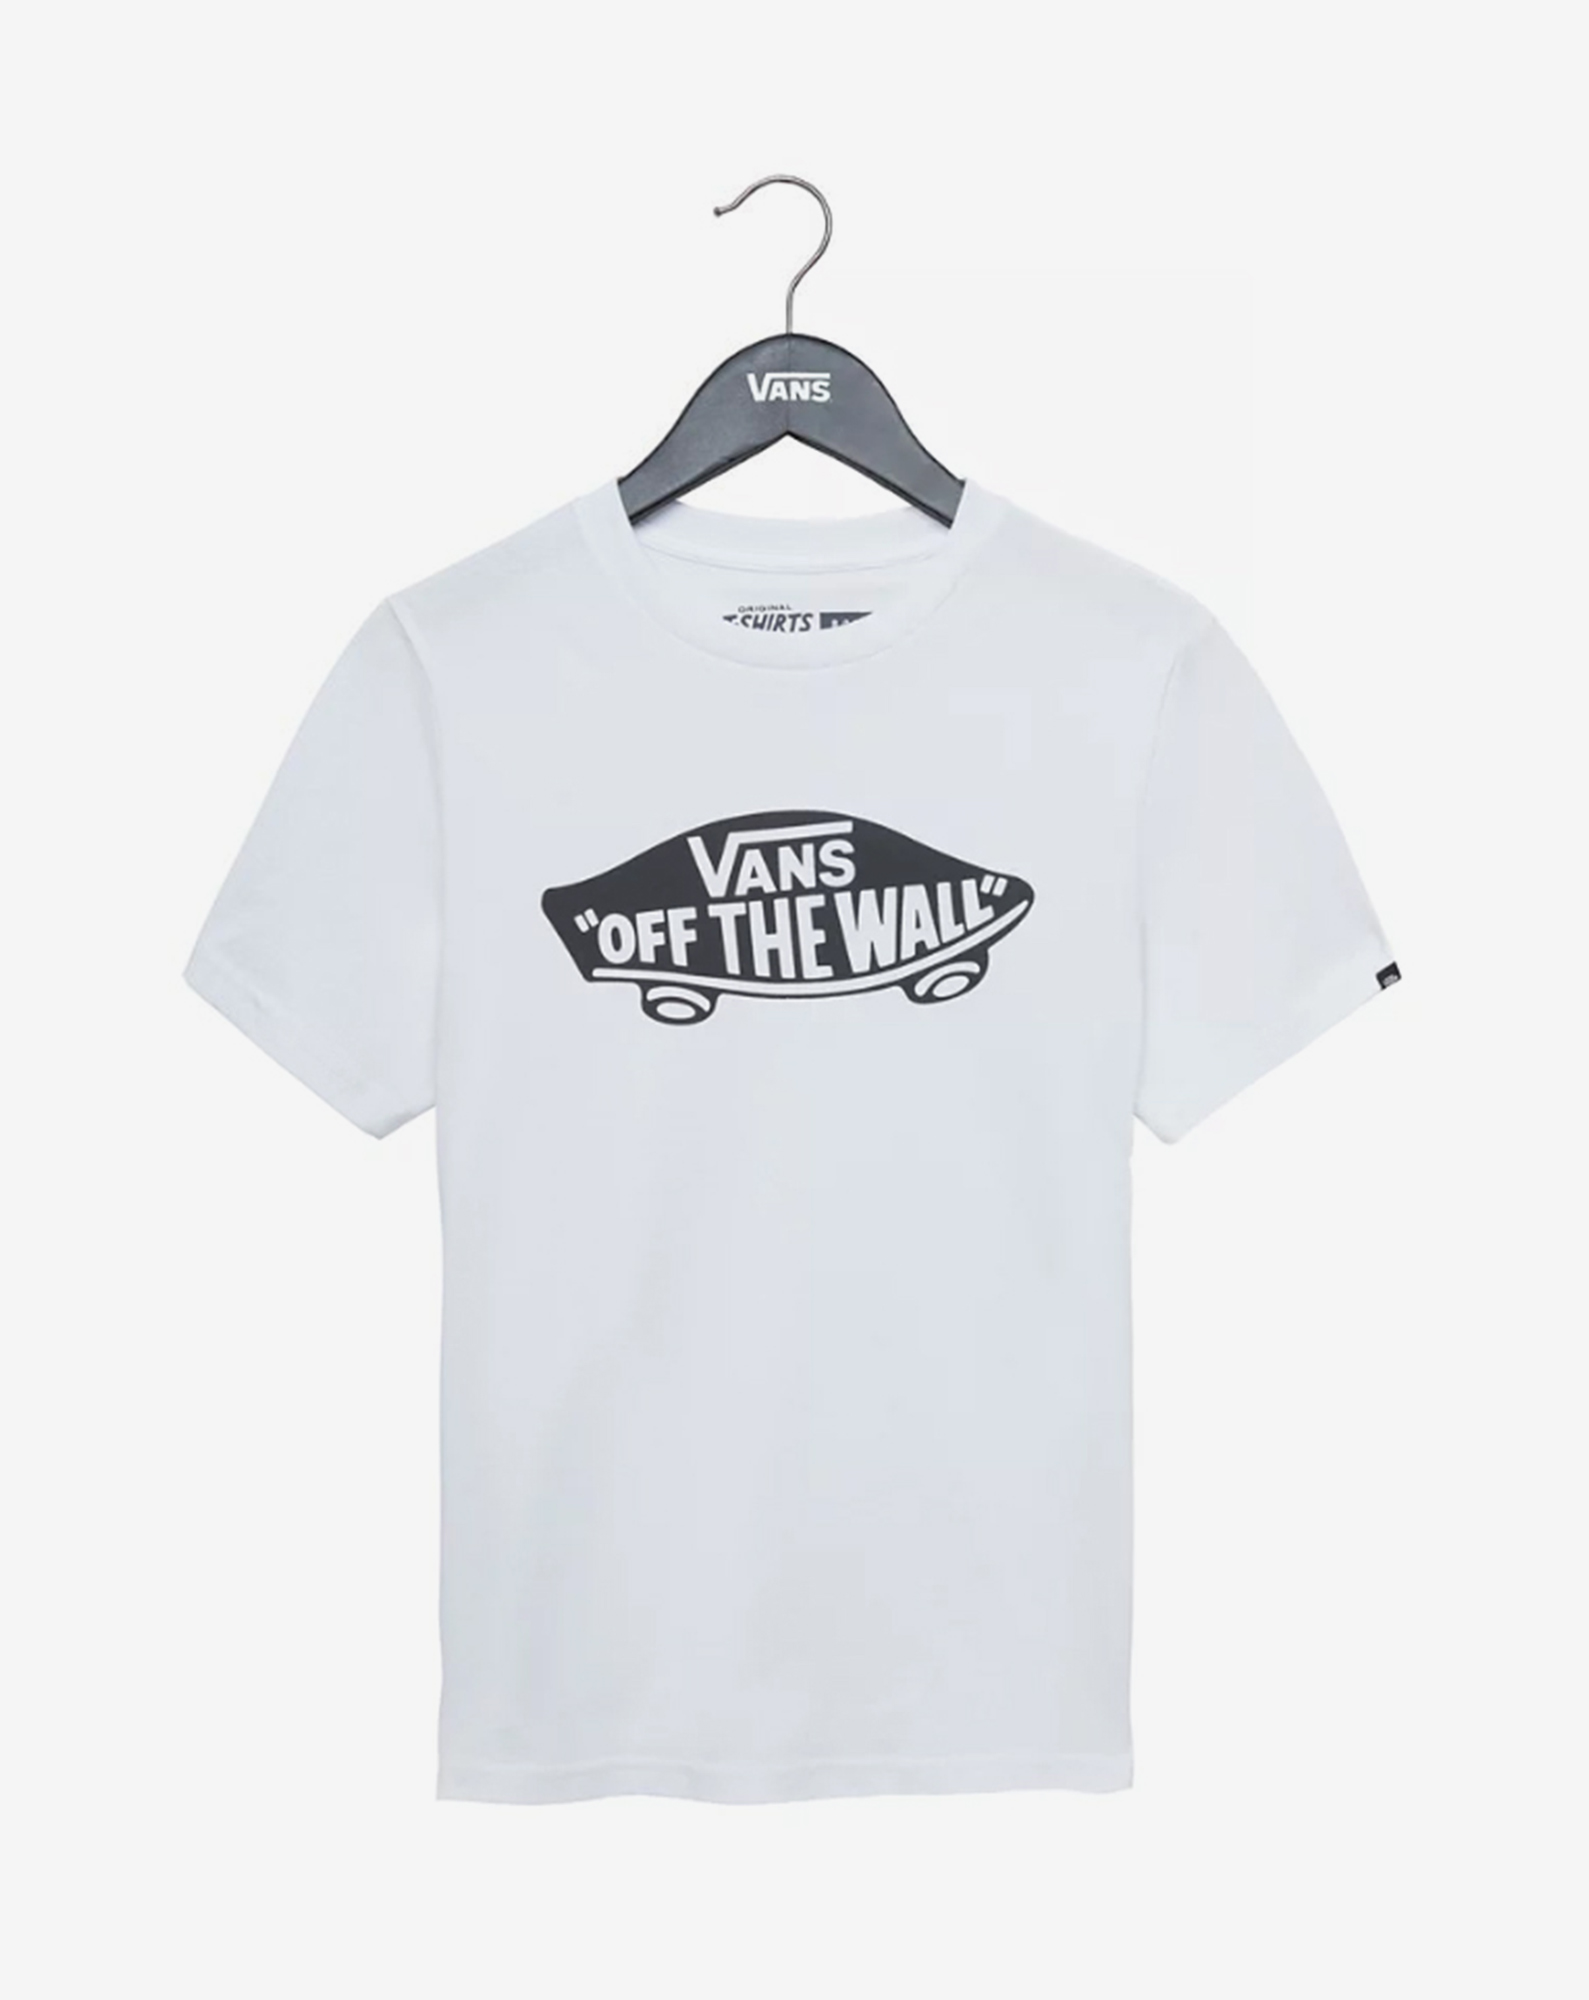 detail BY OTW BOYS White/Black